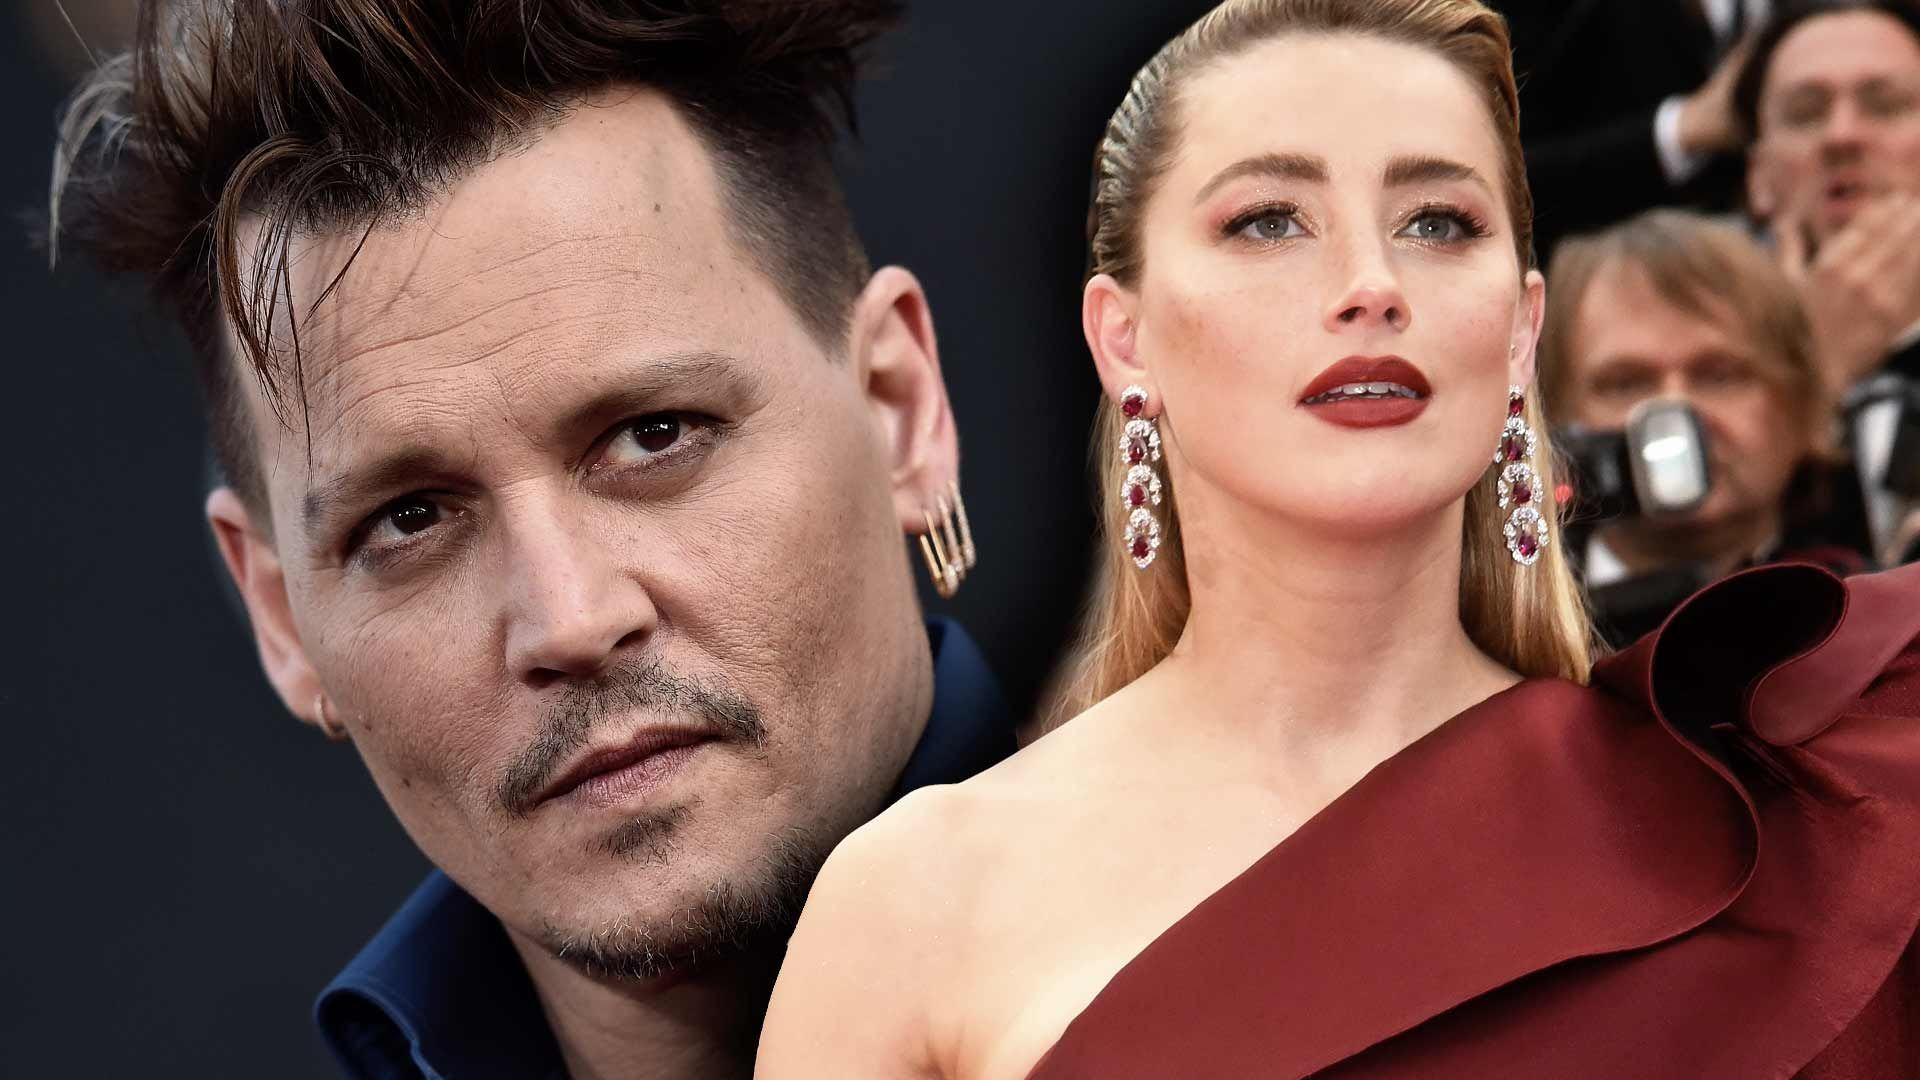 Amber Simpson Videos johnny depp and amber heard going to trial in defamation case